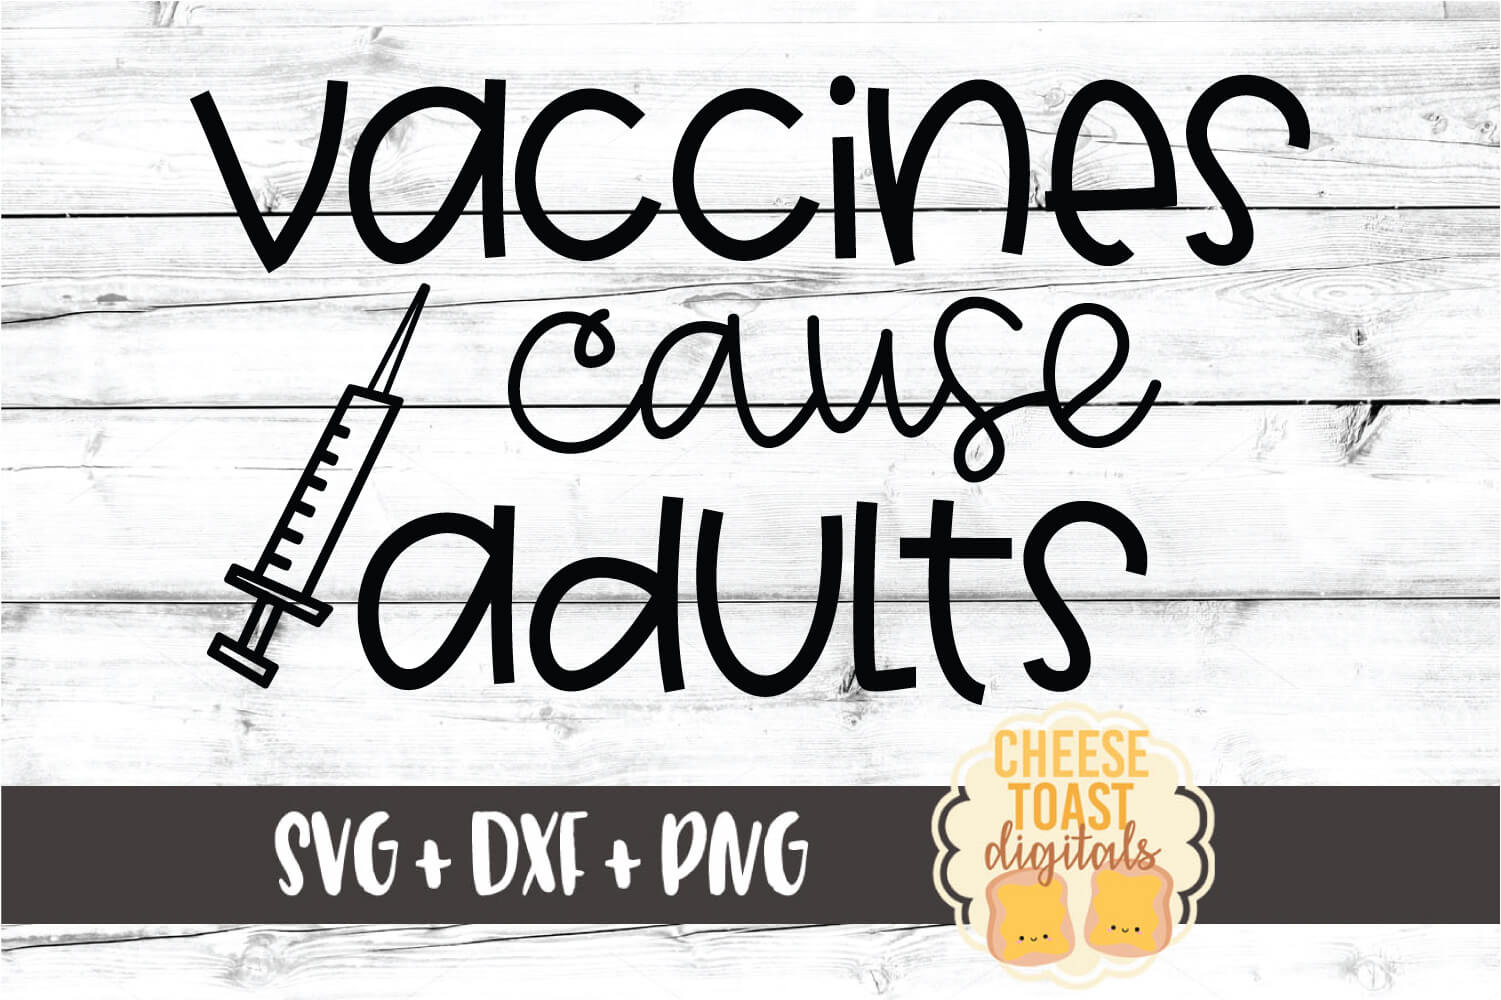 Vaccines Cause Adults - Nurse Design SVG PNG DXF Cut Files example image 2